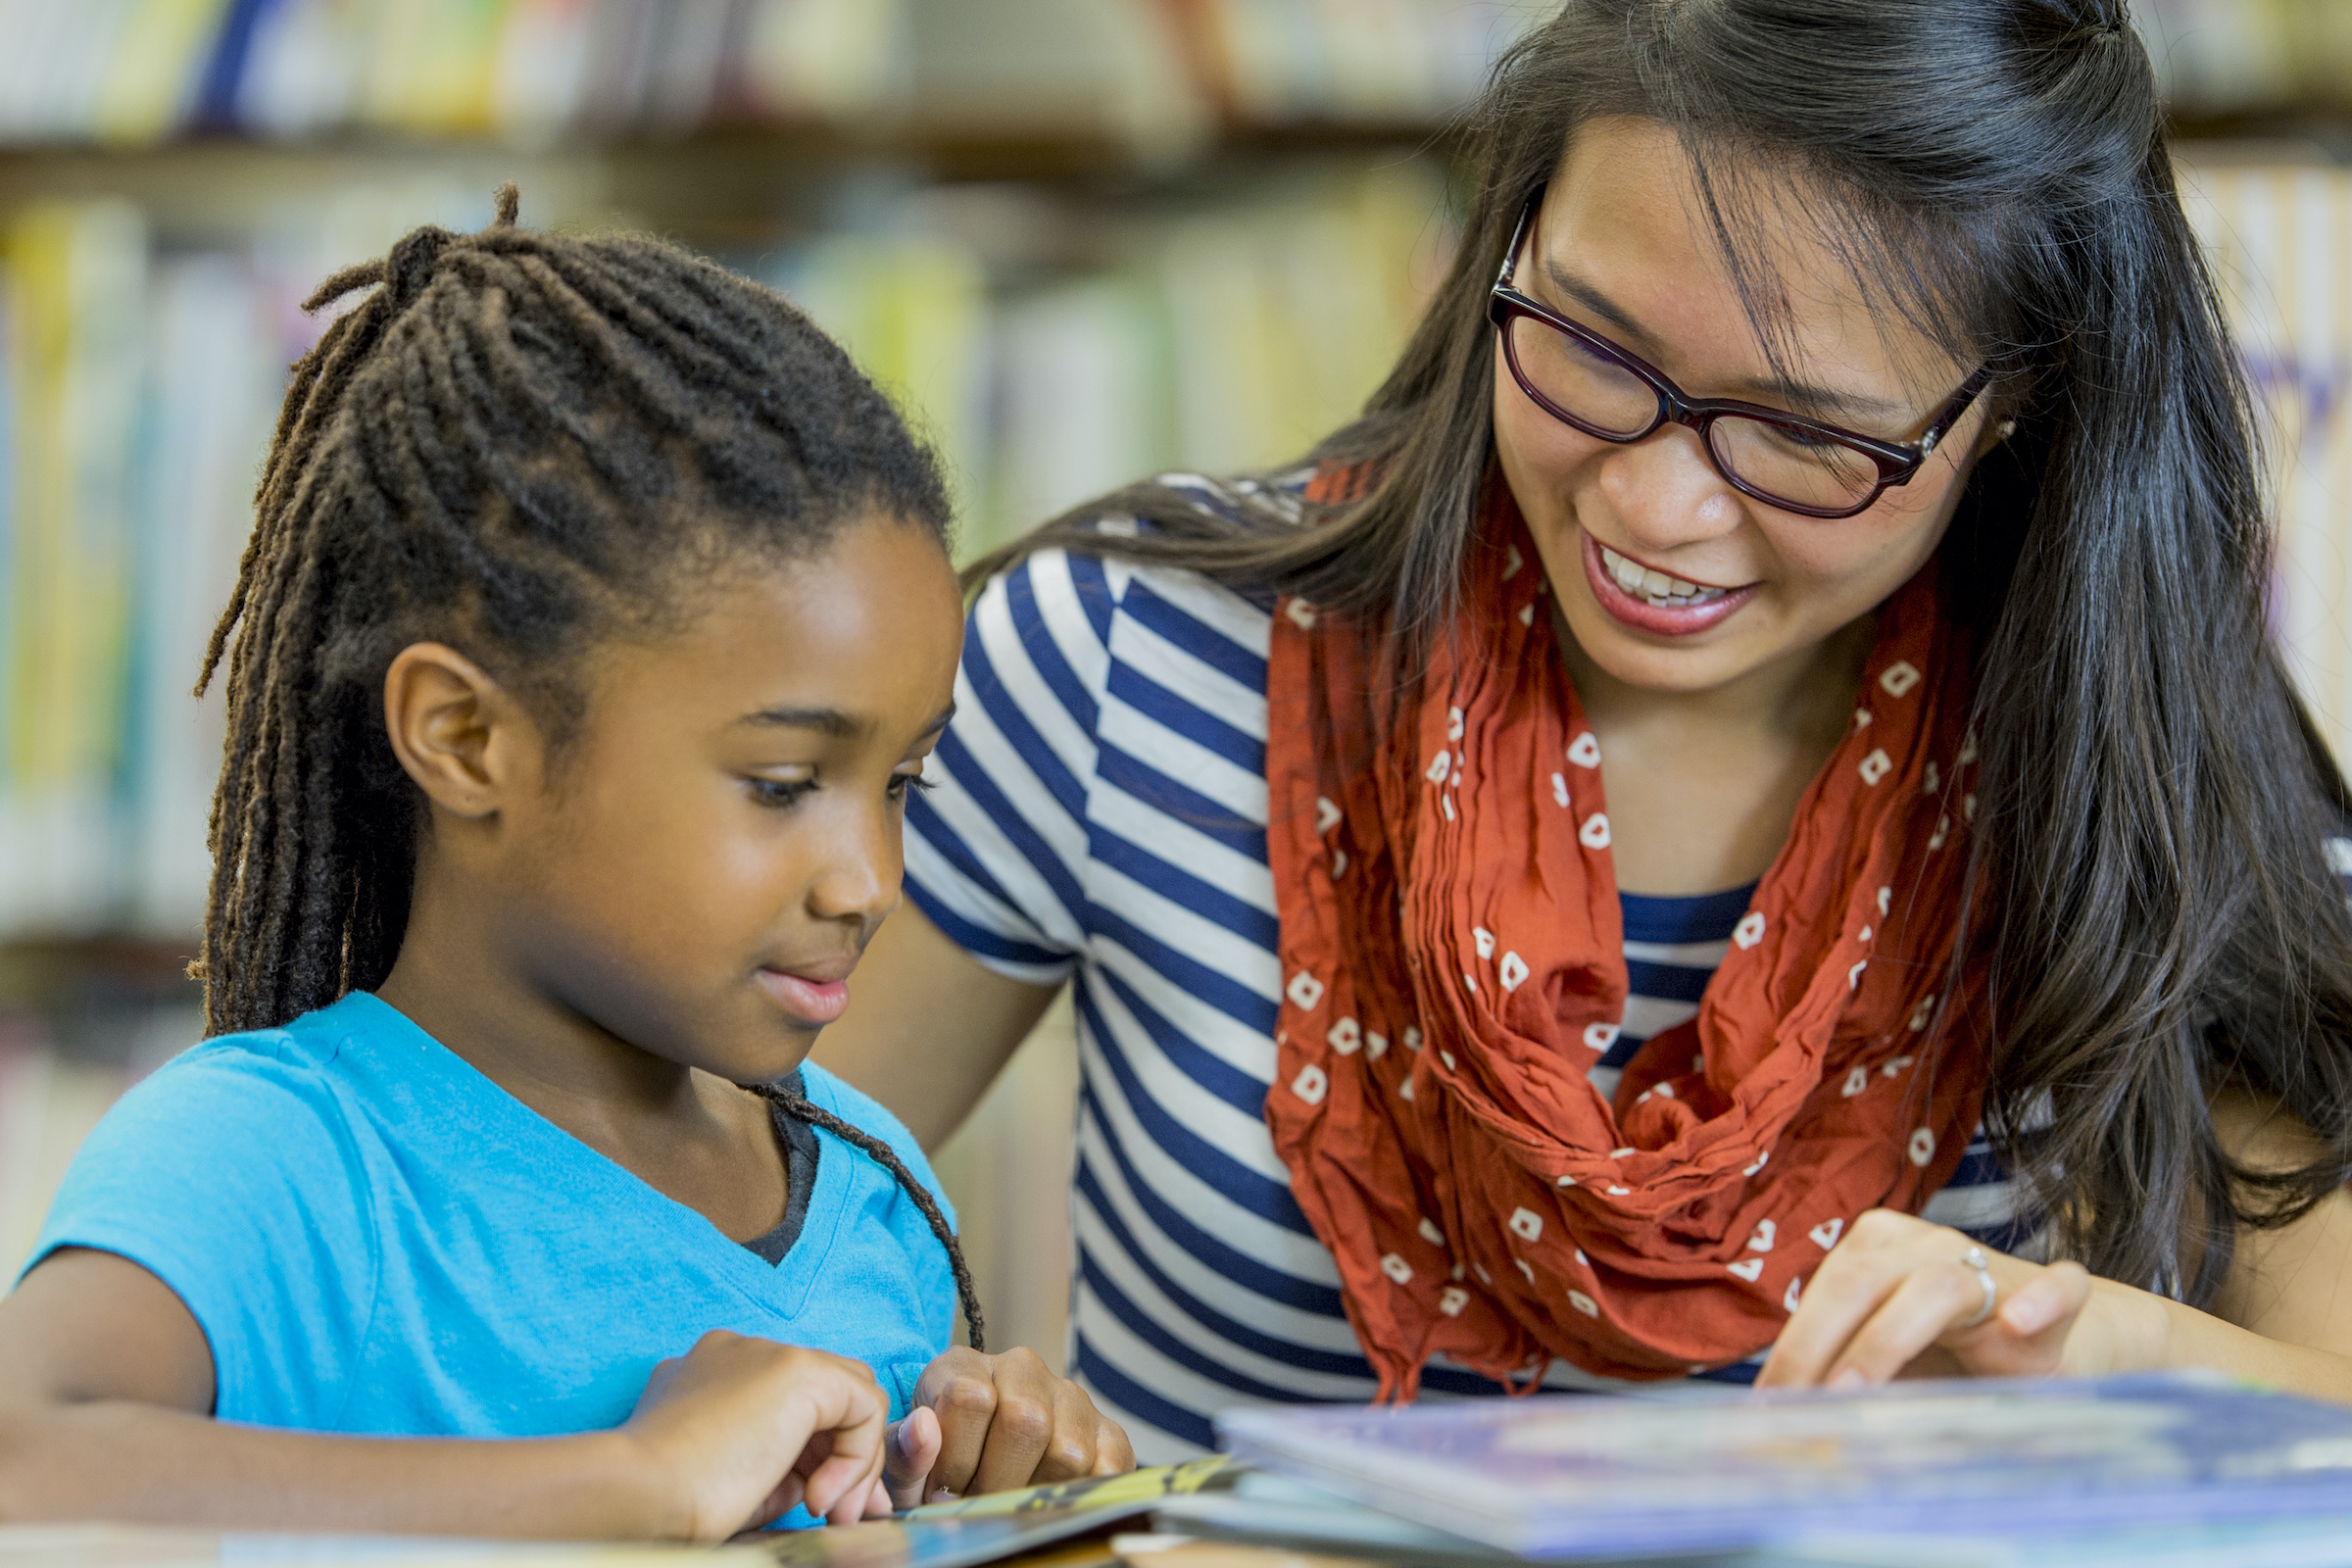 A teacher is reading books with an elementary age girl in the library.